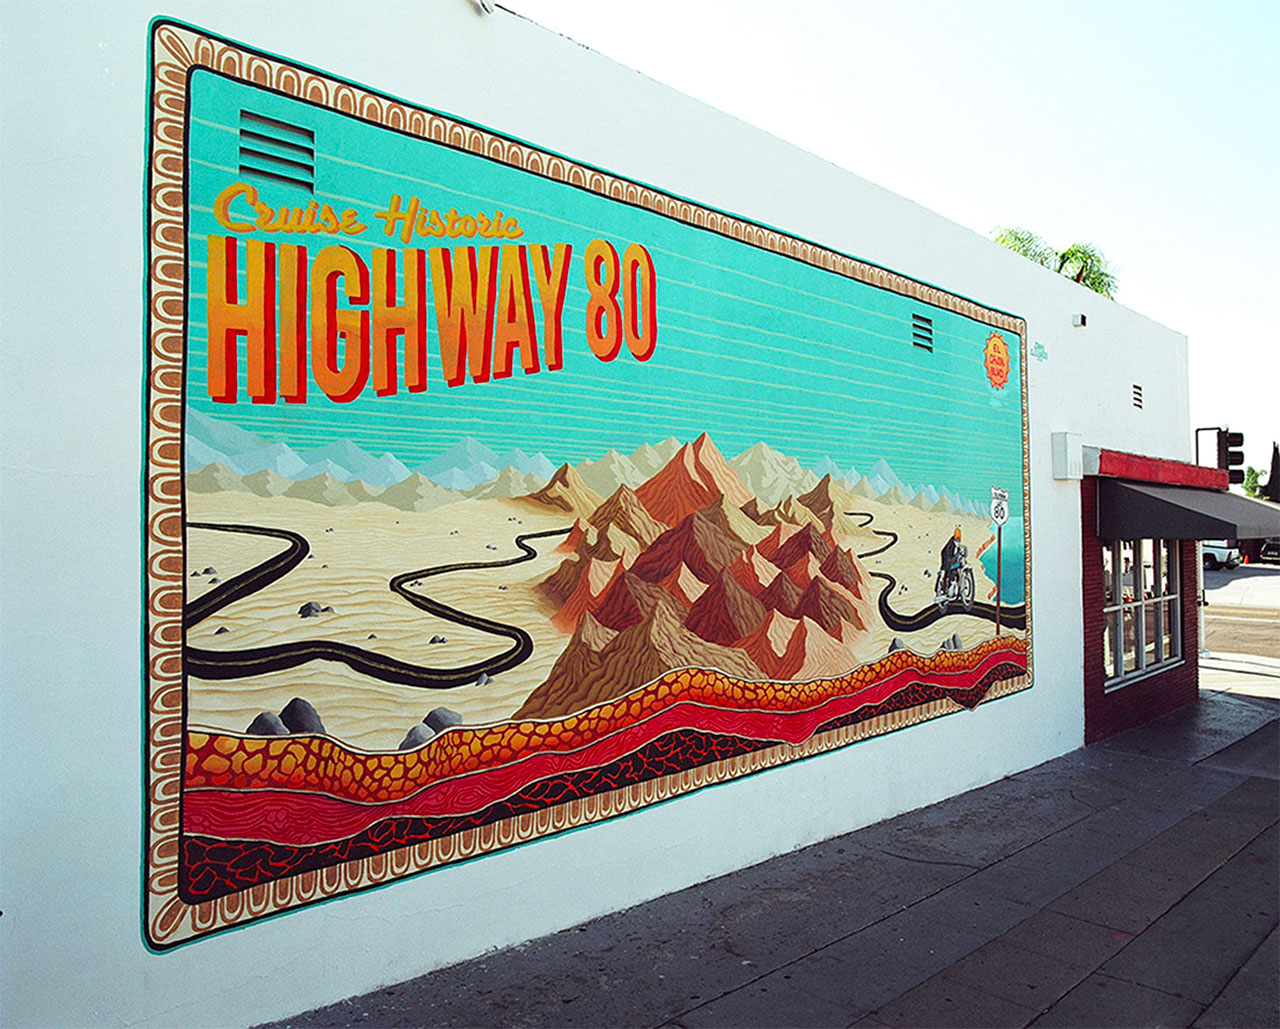 mural of cruise highway 80 outside of a retail store in a desert town